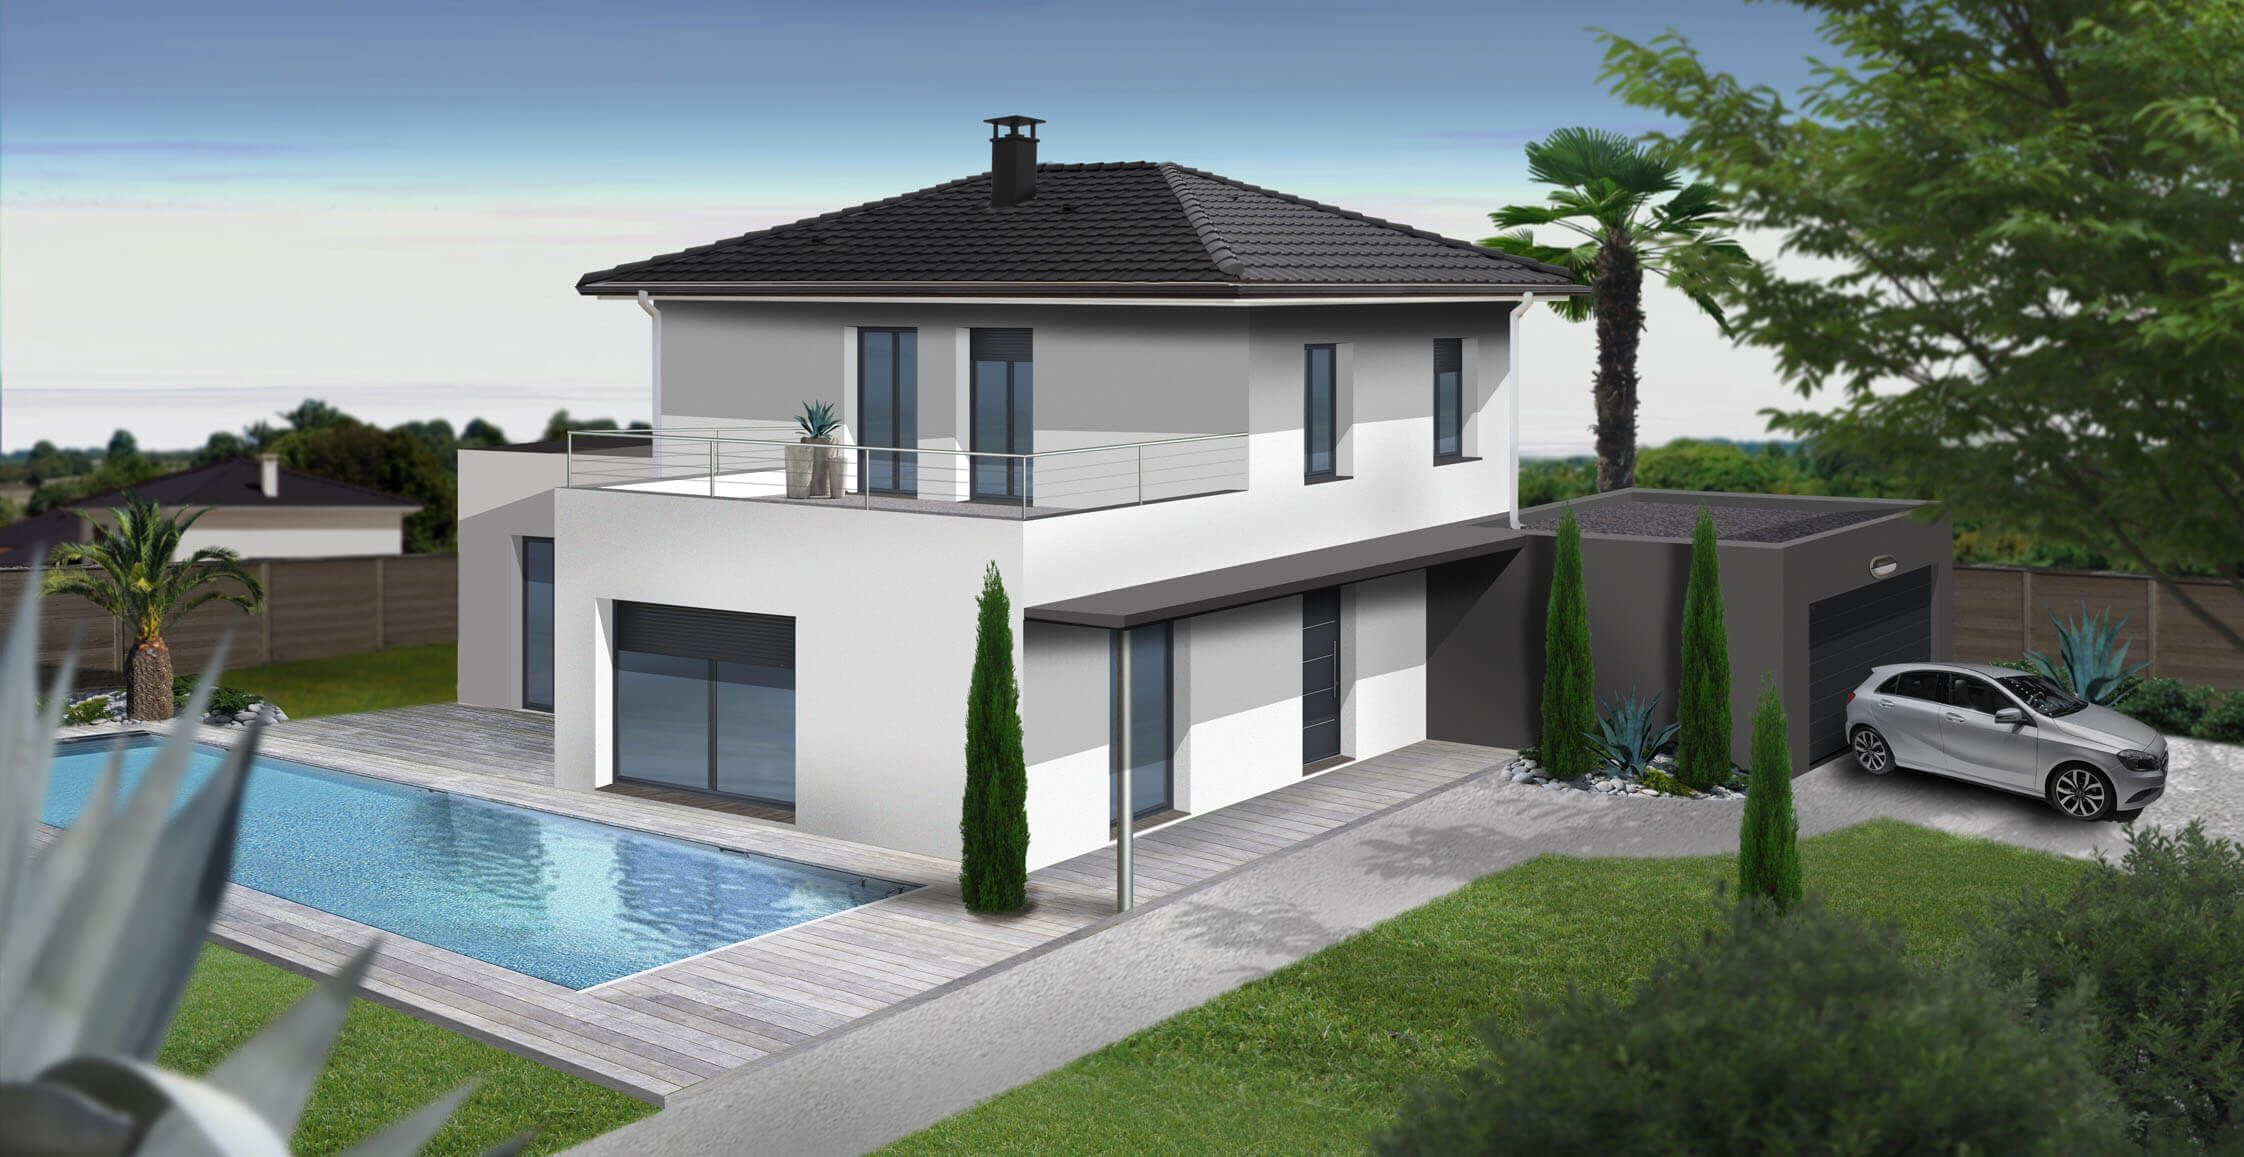 for Maison contemporaine 140m2